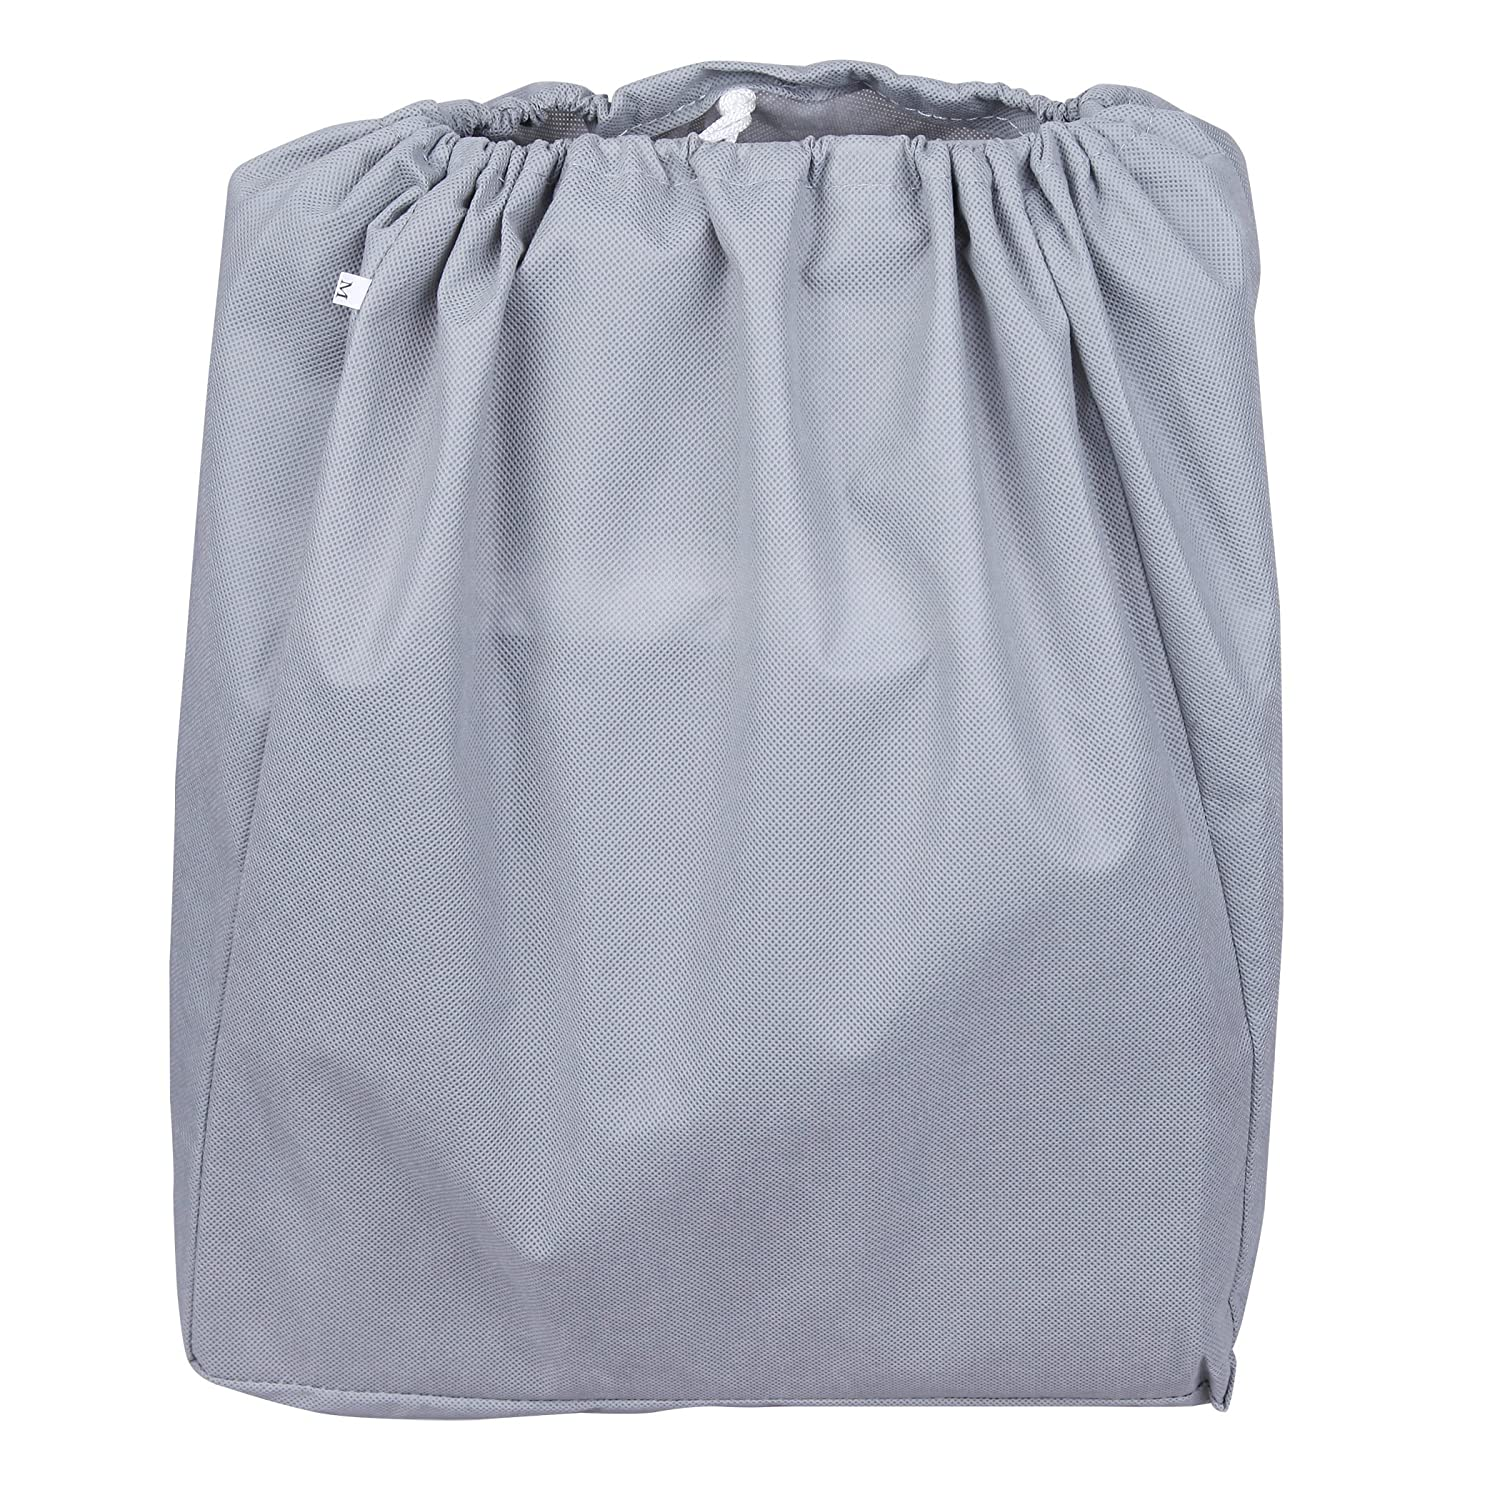 Size:3XL Fits Sedan up to 210 Fits Sedan up to 210 Size:3XL CARTMAN Car Cover Sedan Cover Windproof//Dustproof//Scratch Resistant Outdoor UV Protection